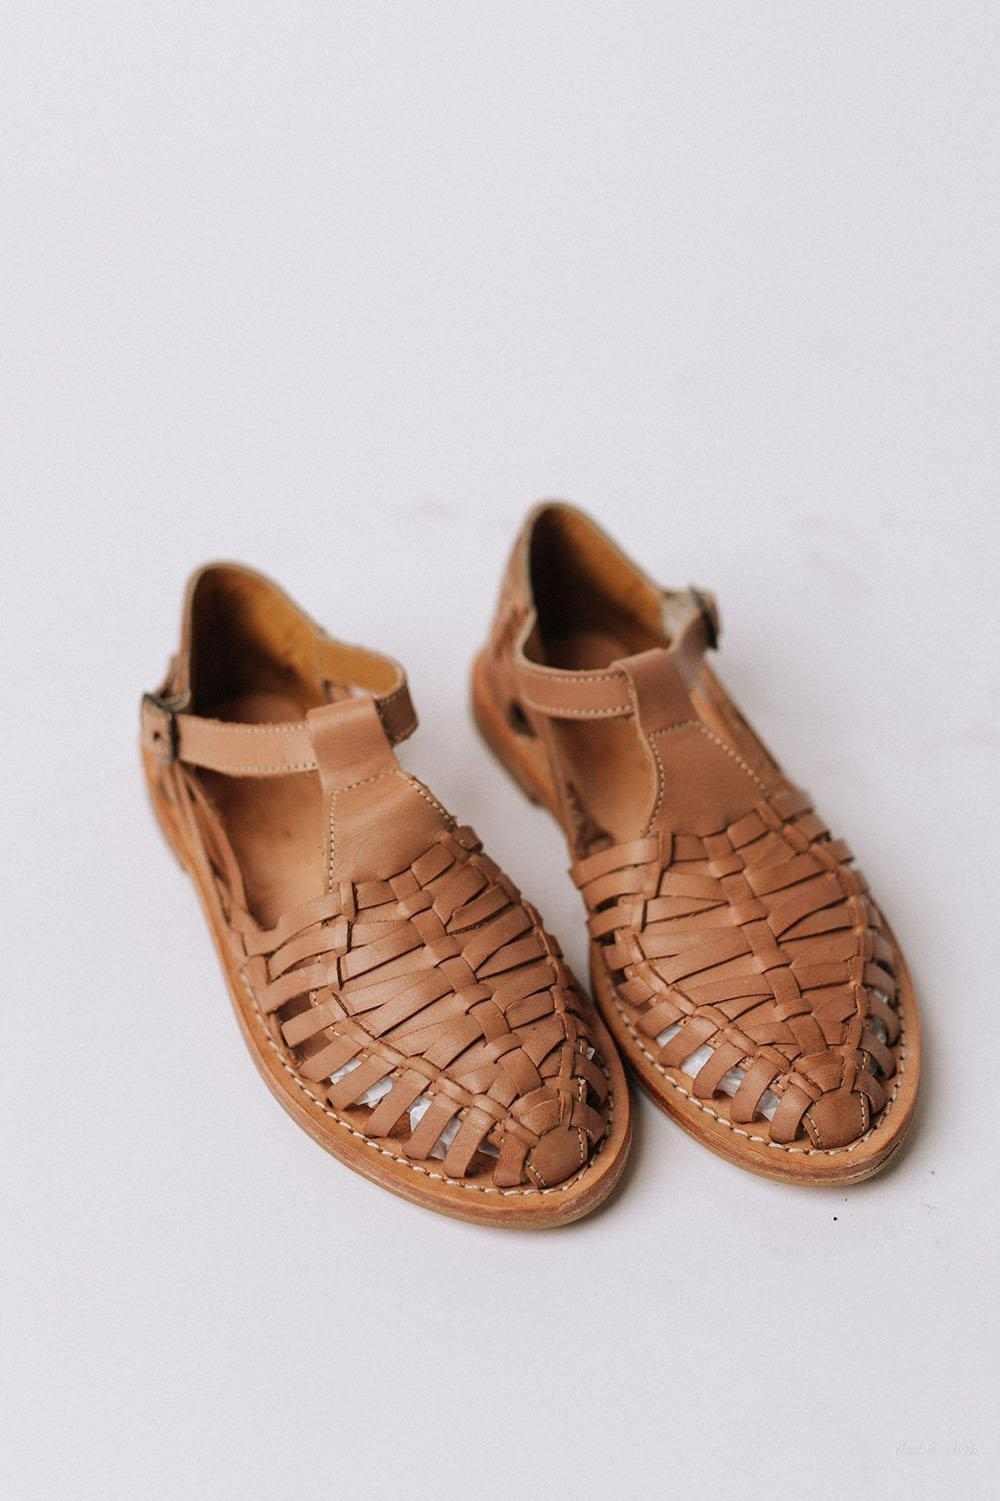 best_seller, Lacey Flats in Natural, Shoes, women's clothing, dresses, skirts, coats, jackets, shoes, boots, tops, tee shirts, jeans, free people, levi's, rollas, jumpsuits, bottoms, tops, sweaters, pullovers, pants, shorts, sweats,.